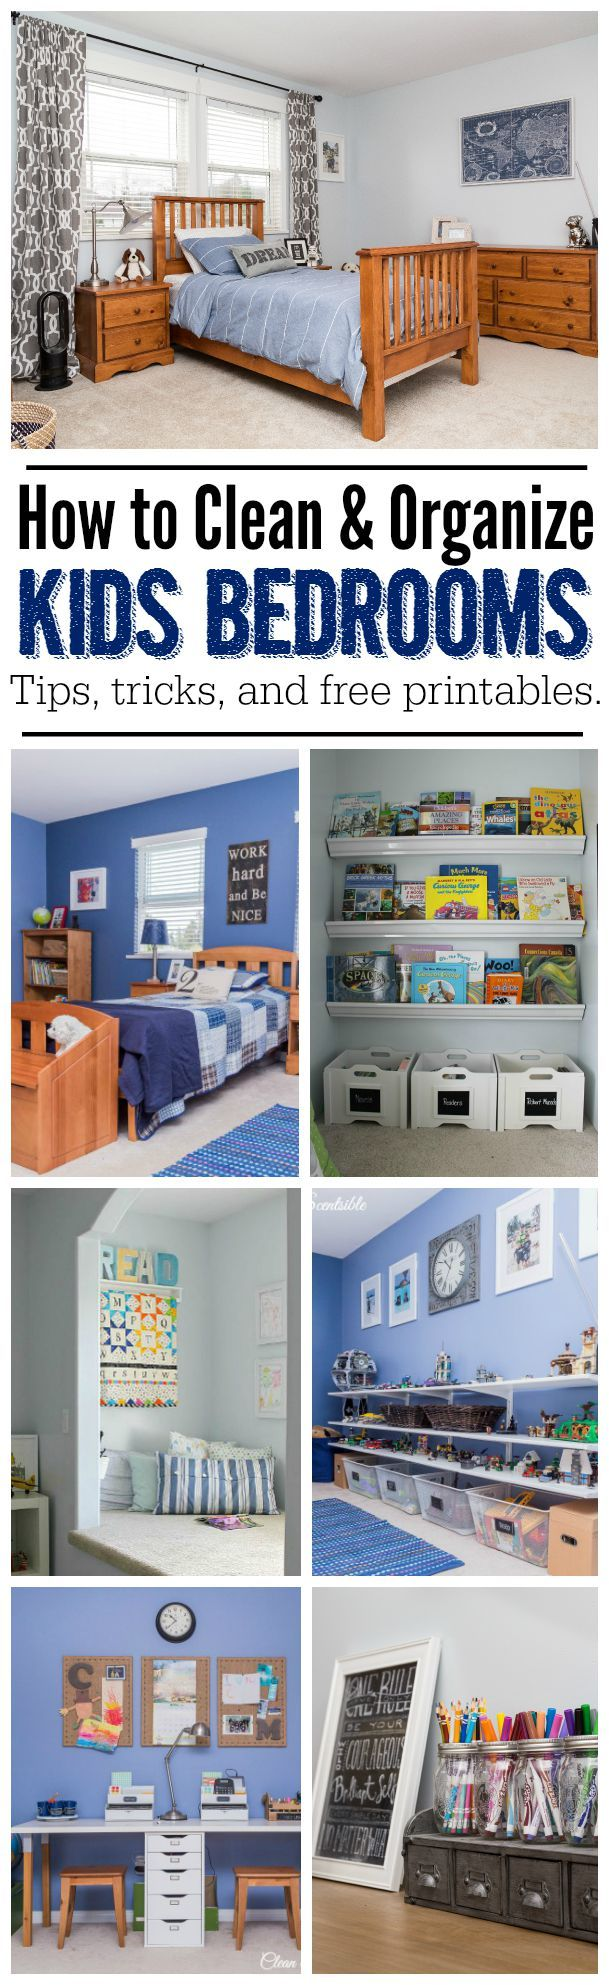 How to Organize Kids Bedrooms - Lots of tips and ideas to get you started and free printables included!